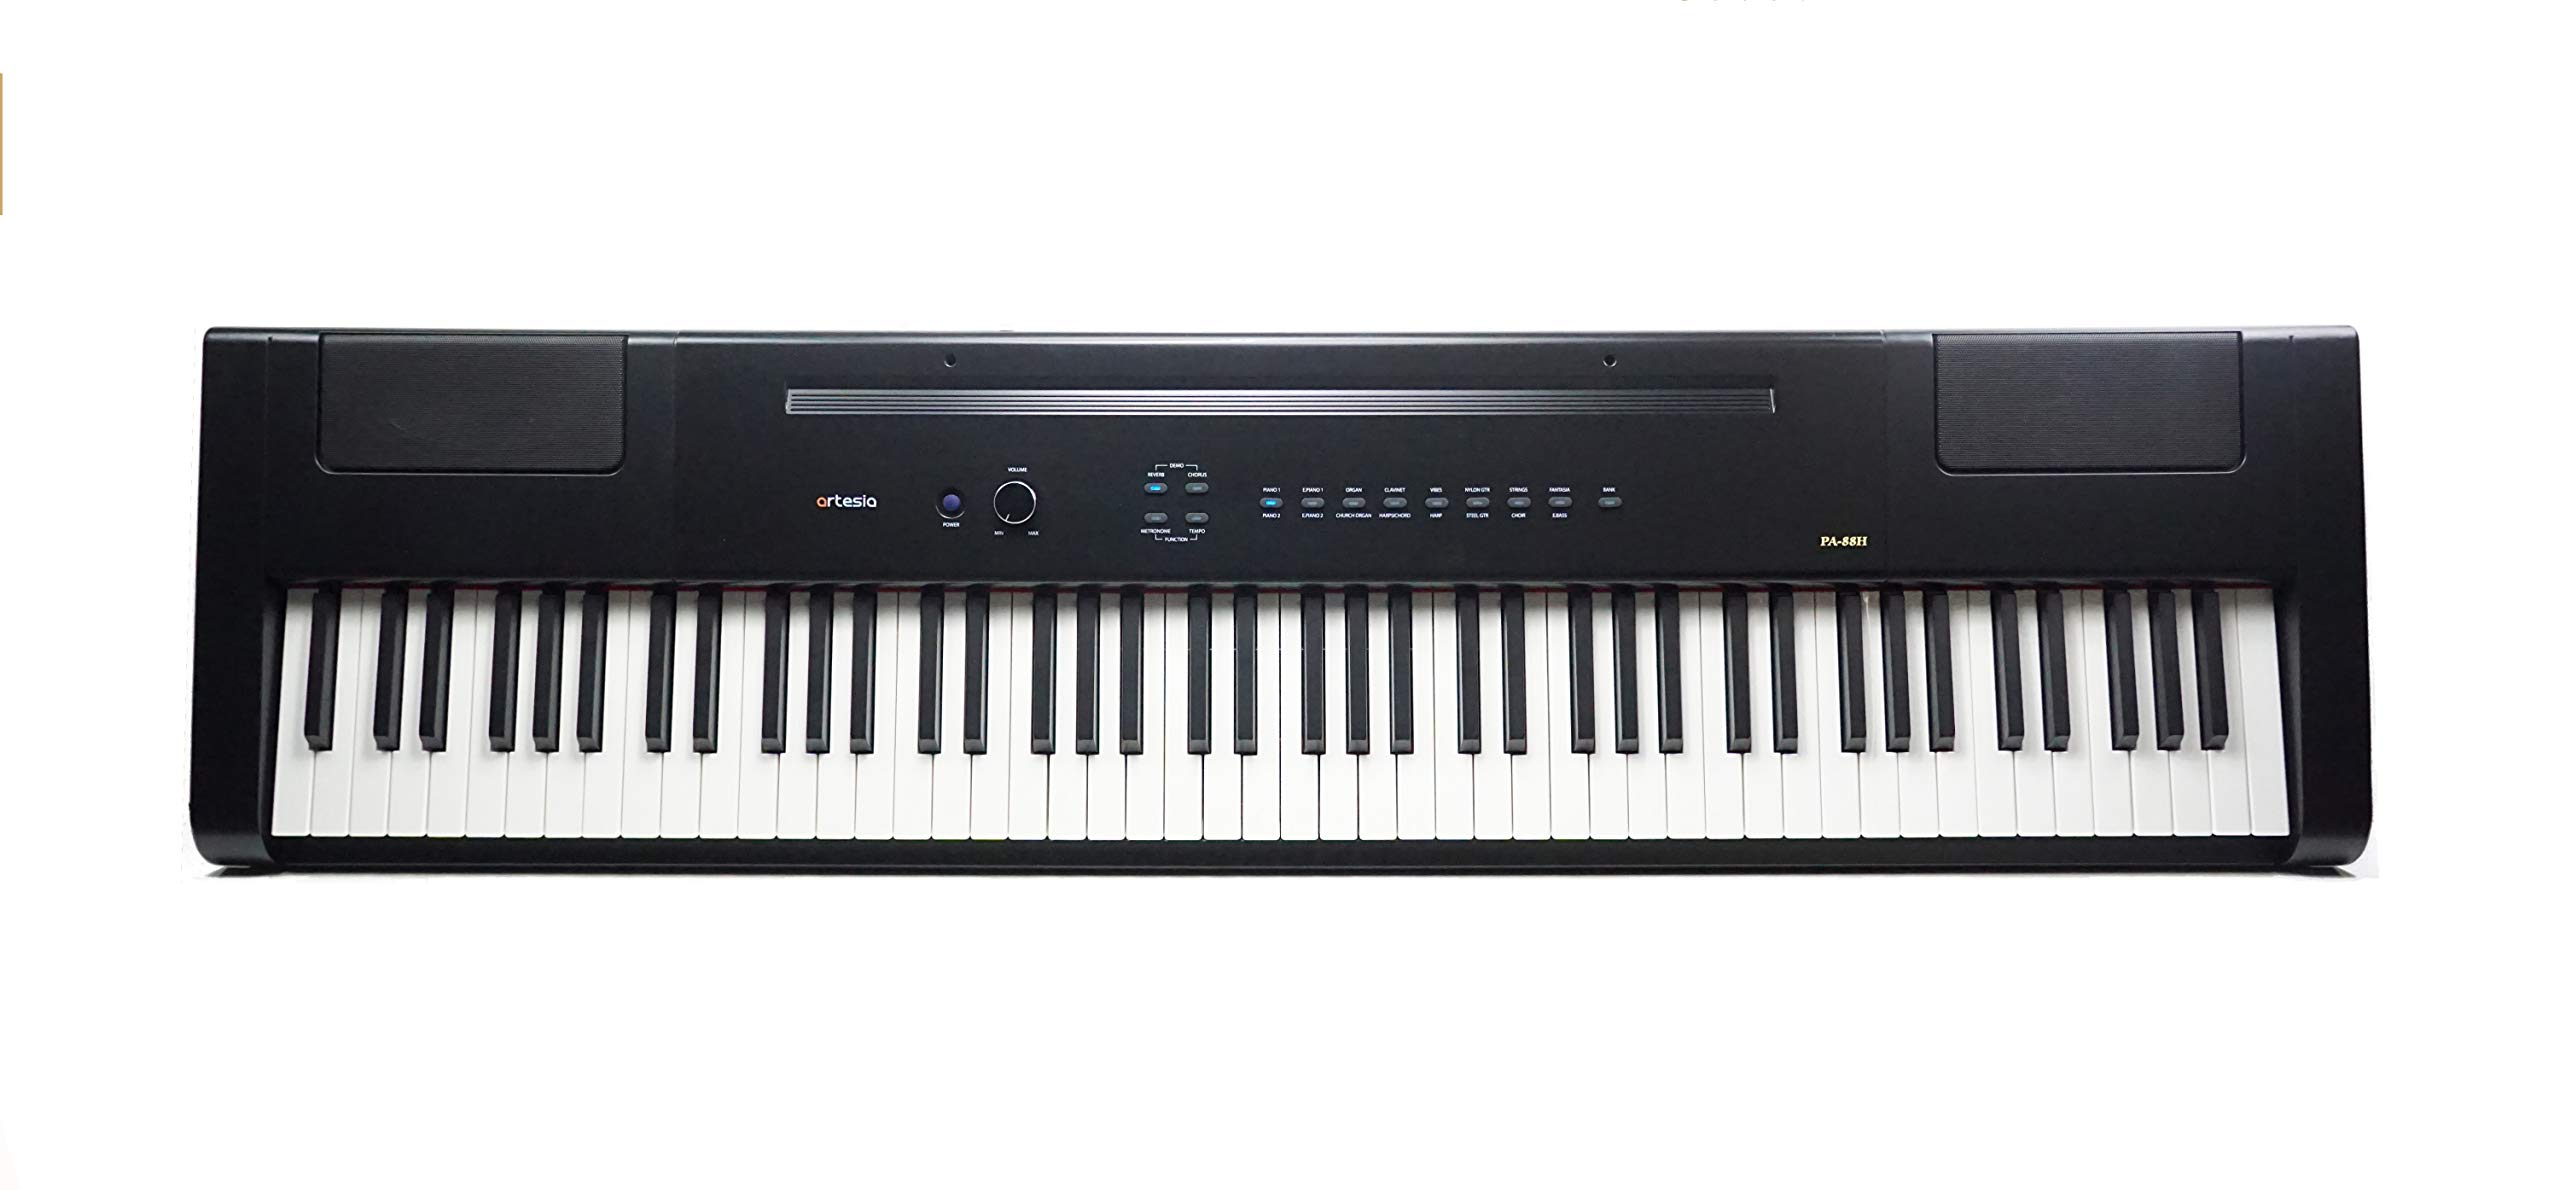 Artesia PA-88H 88-Key Weighted Hammer Action Digital Piano with Sustain Pedal and Power Supply, Black by Artesia